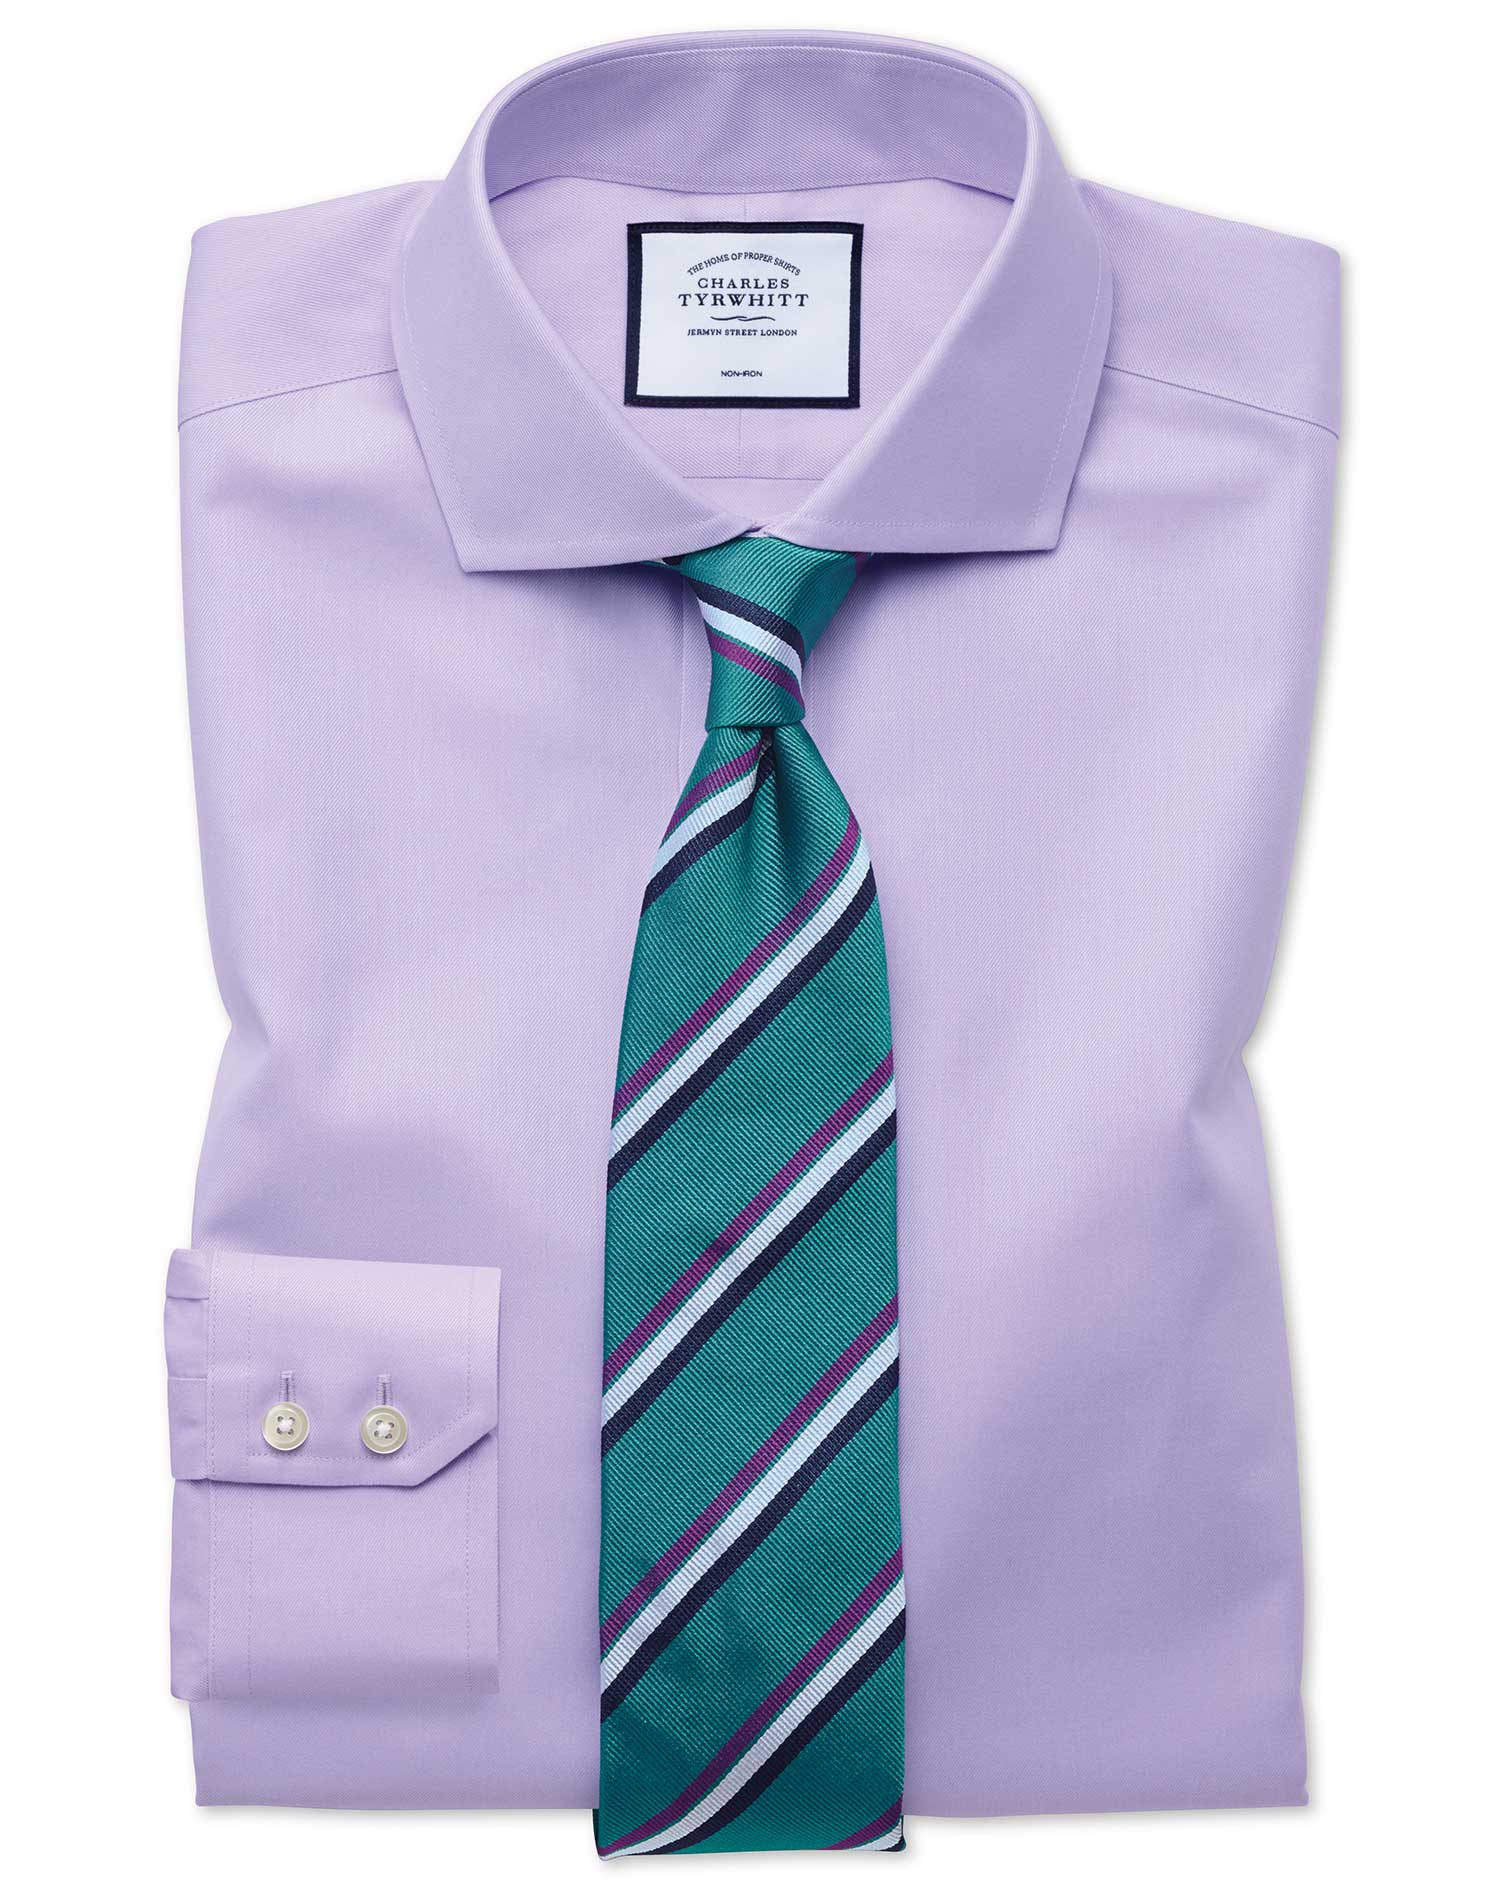 Slim Fit Non-Iron Twill Lilac Cutaway Collar Cotton Formal Shirt Single Cuff Size 16.5/35 by Charles